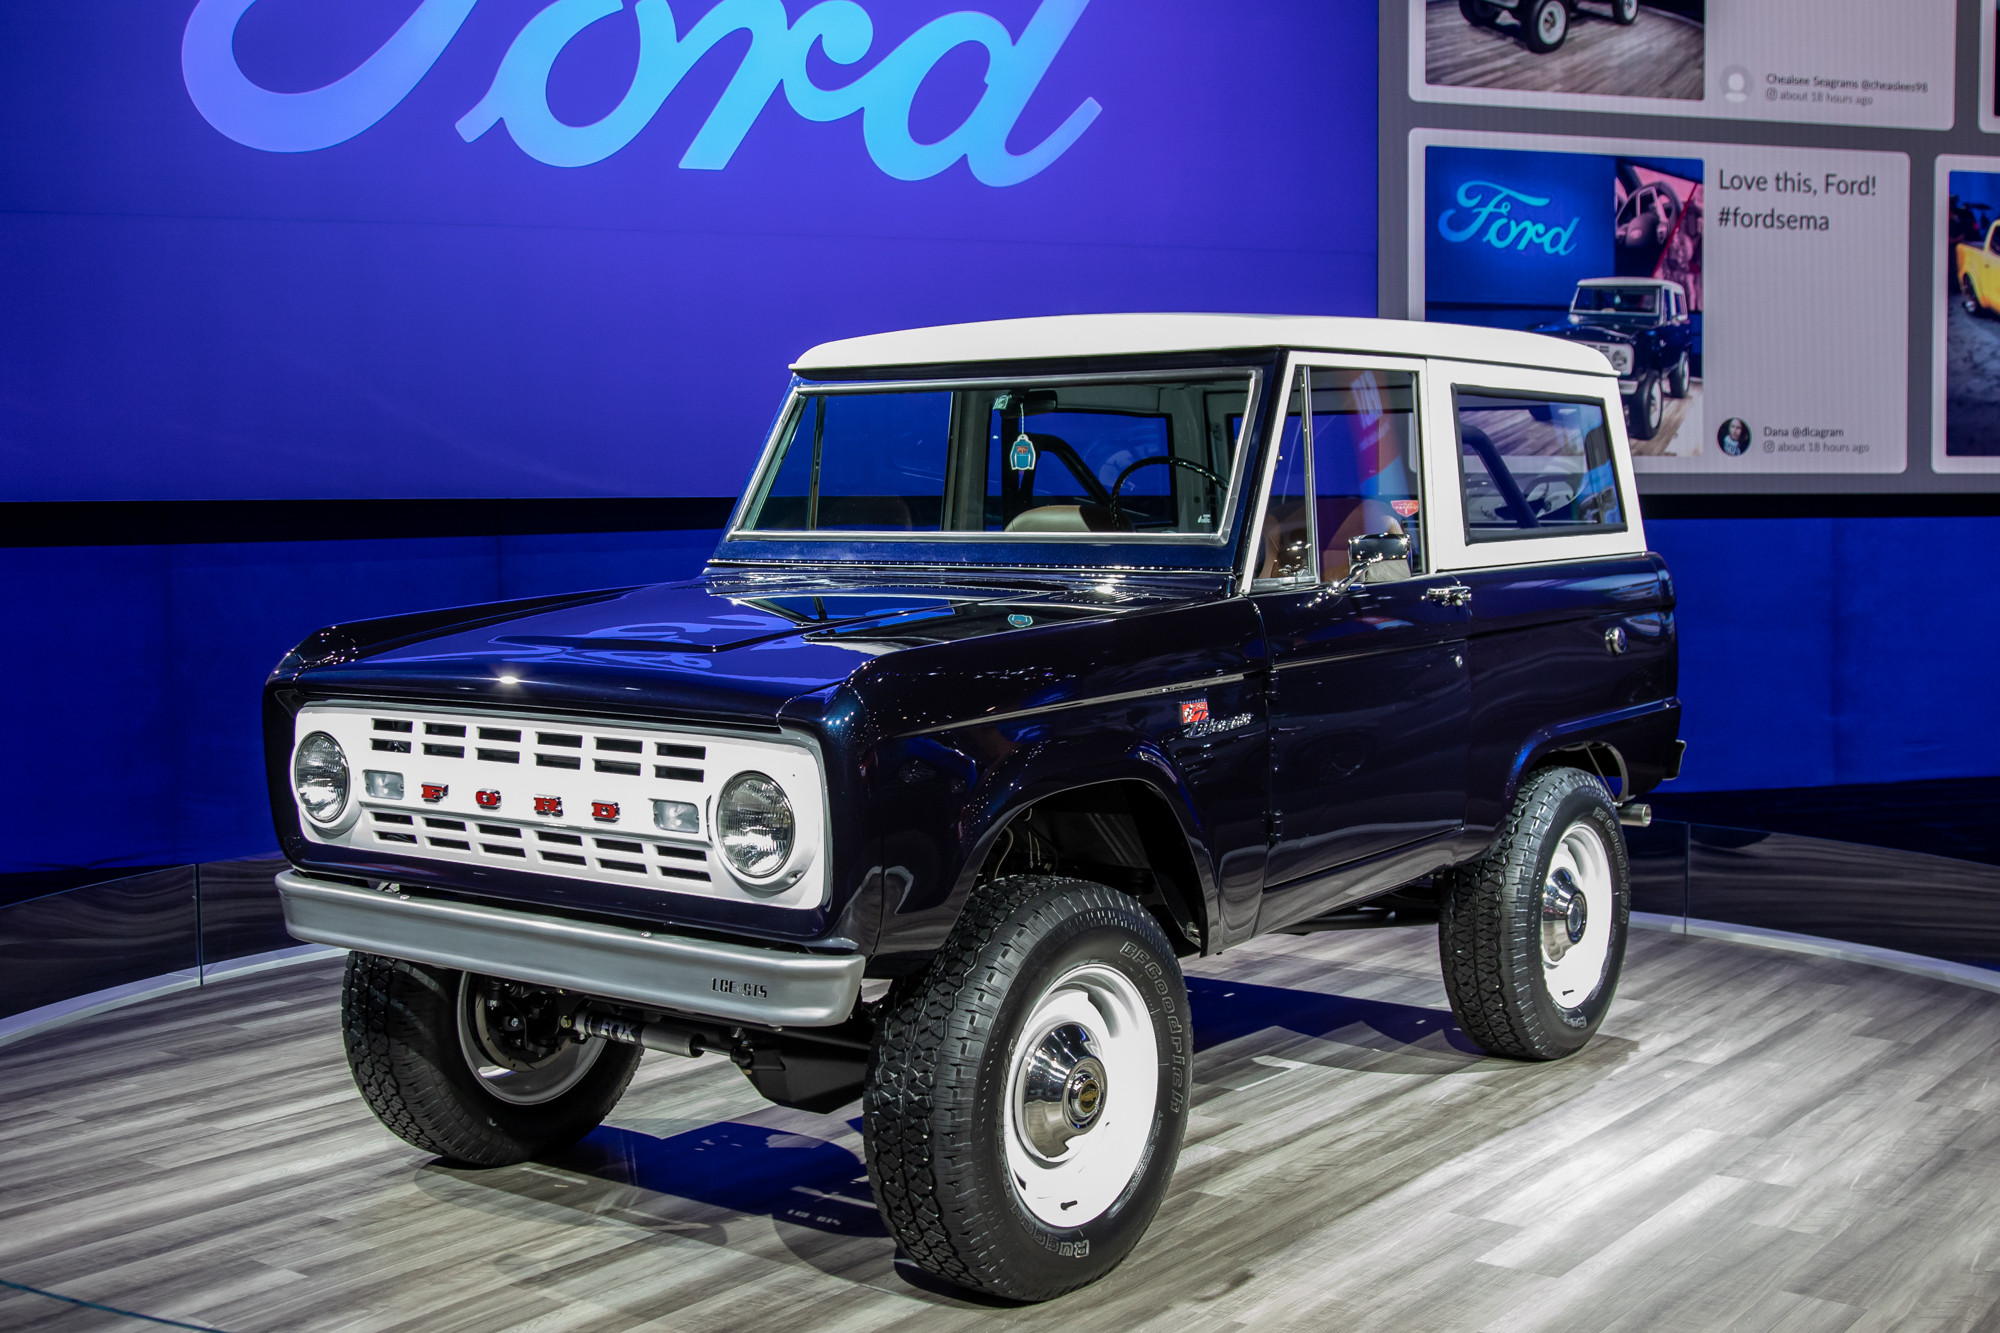 ford-bronco-1968-sema-cl-01-.jpg